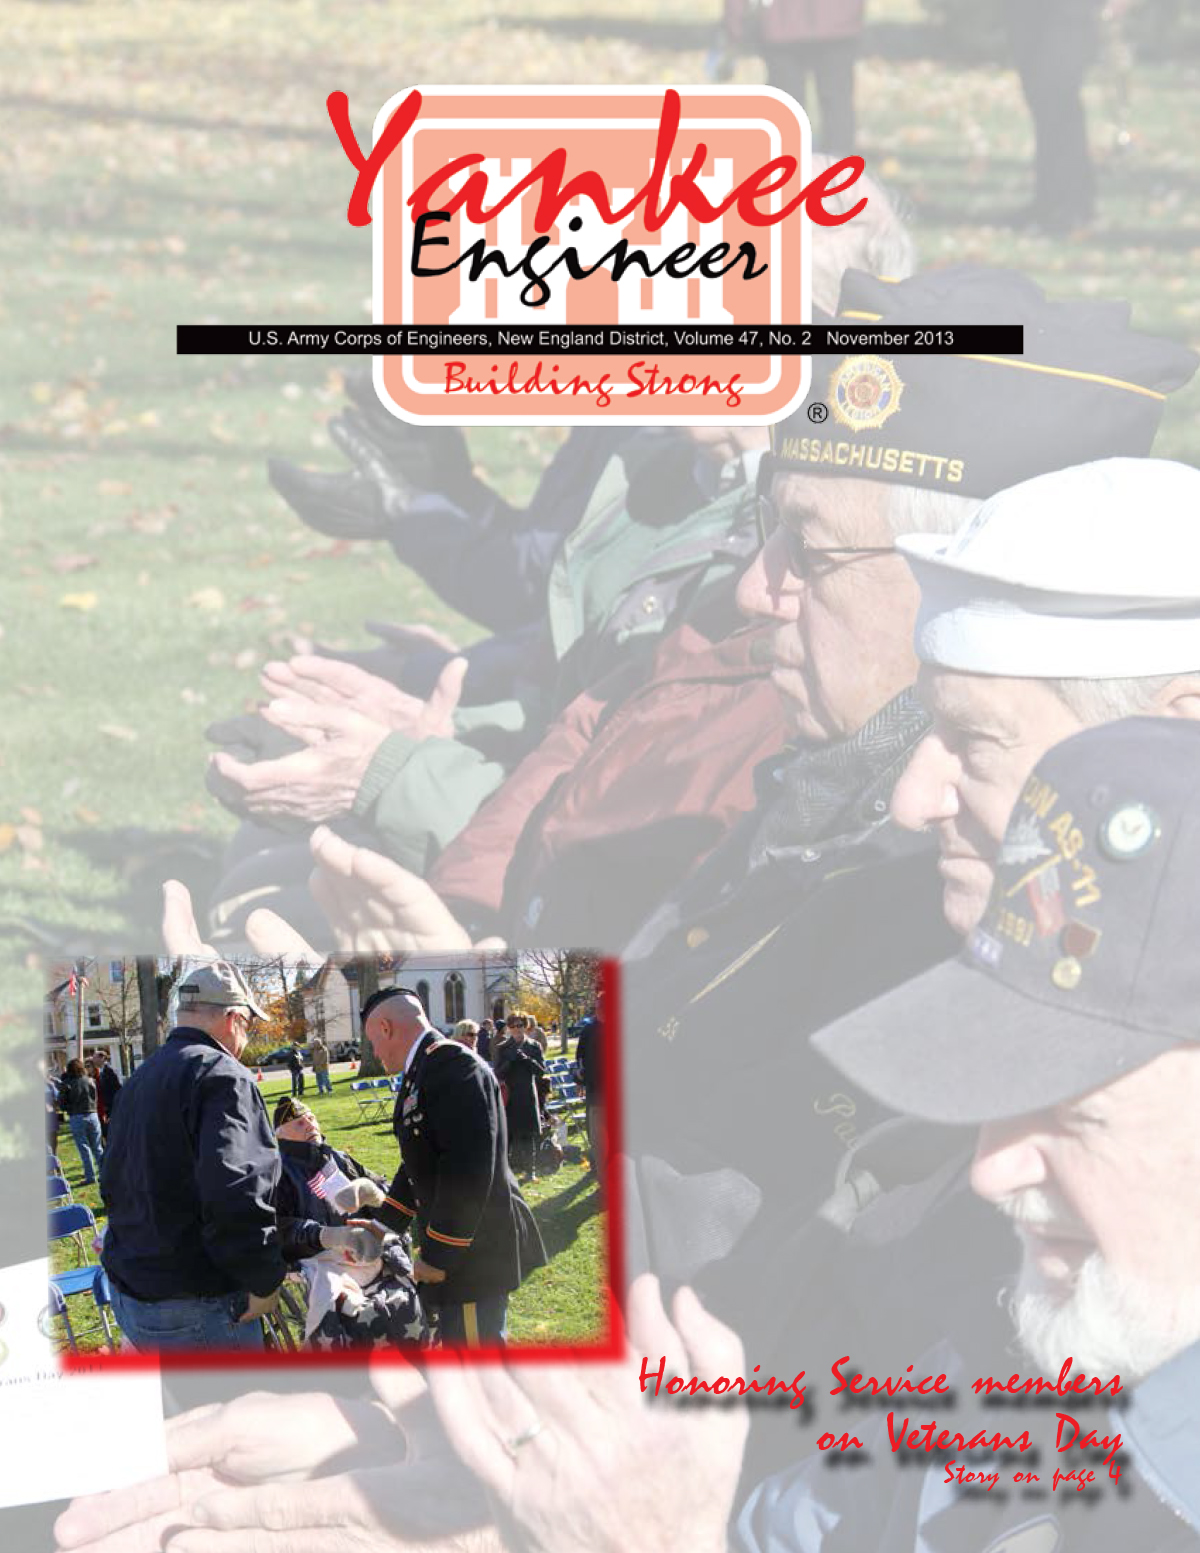 November 2013 issue of the Yankee Engineer magazine